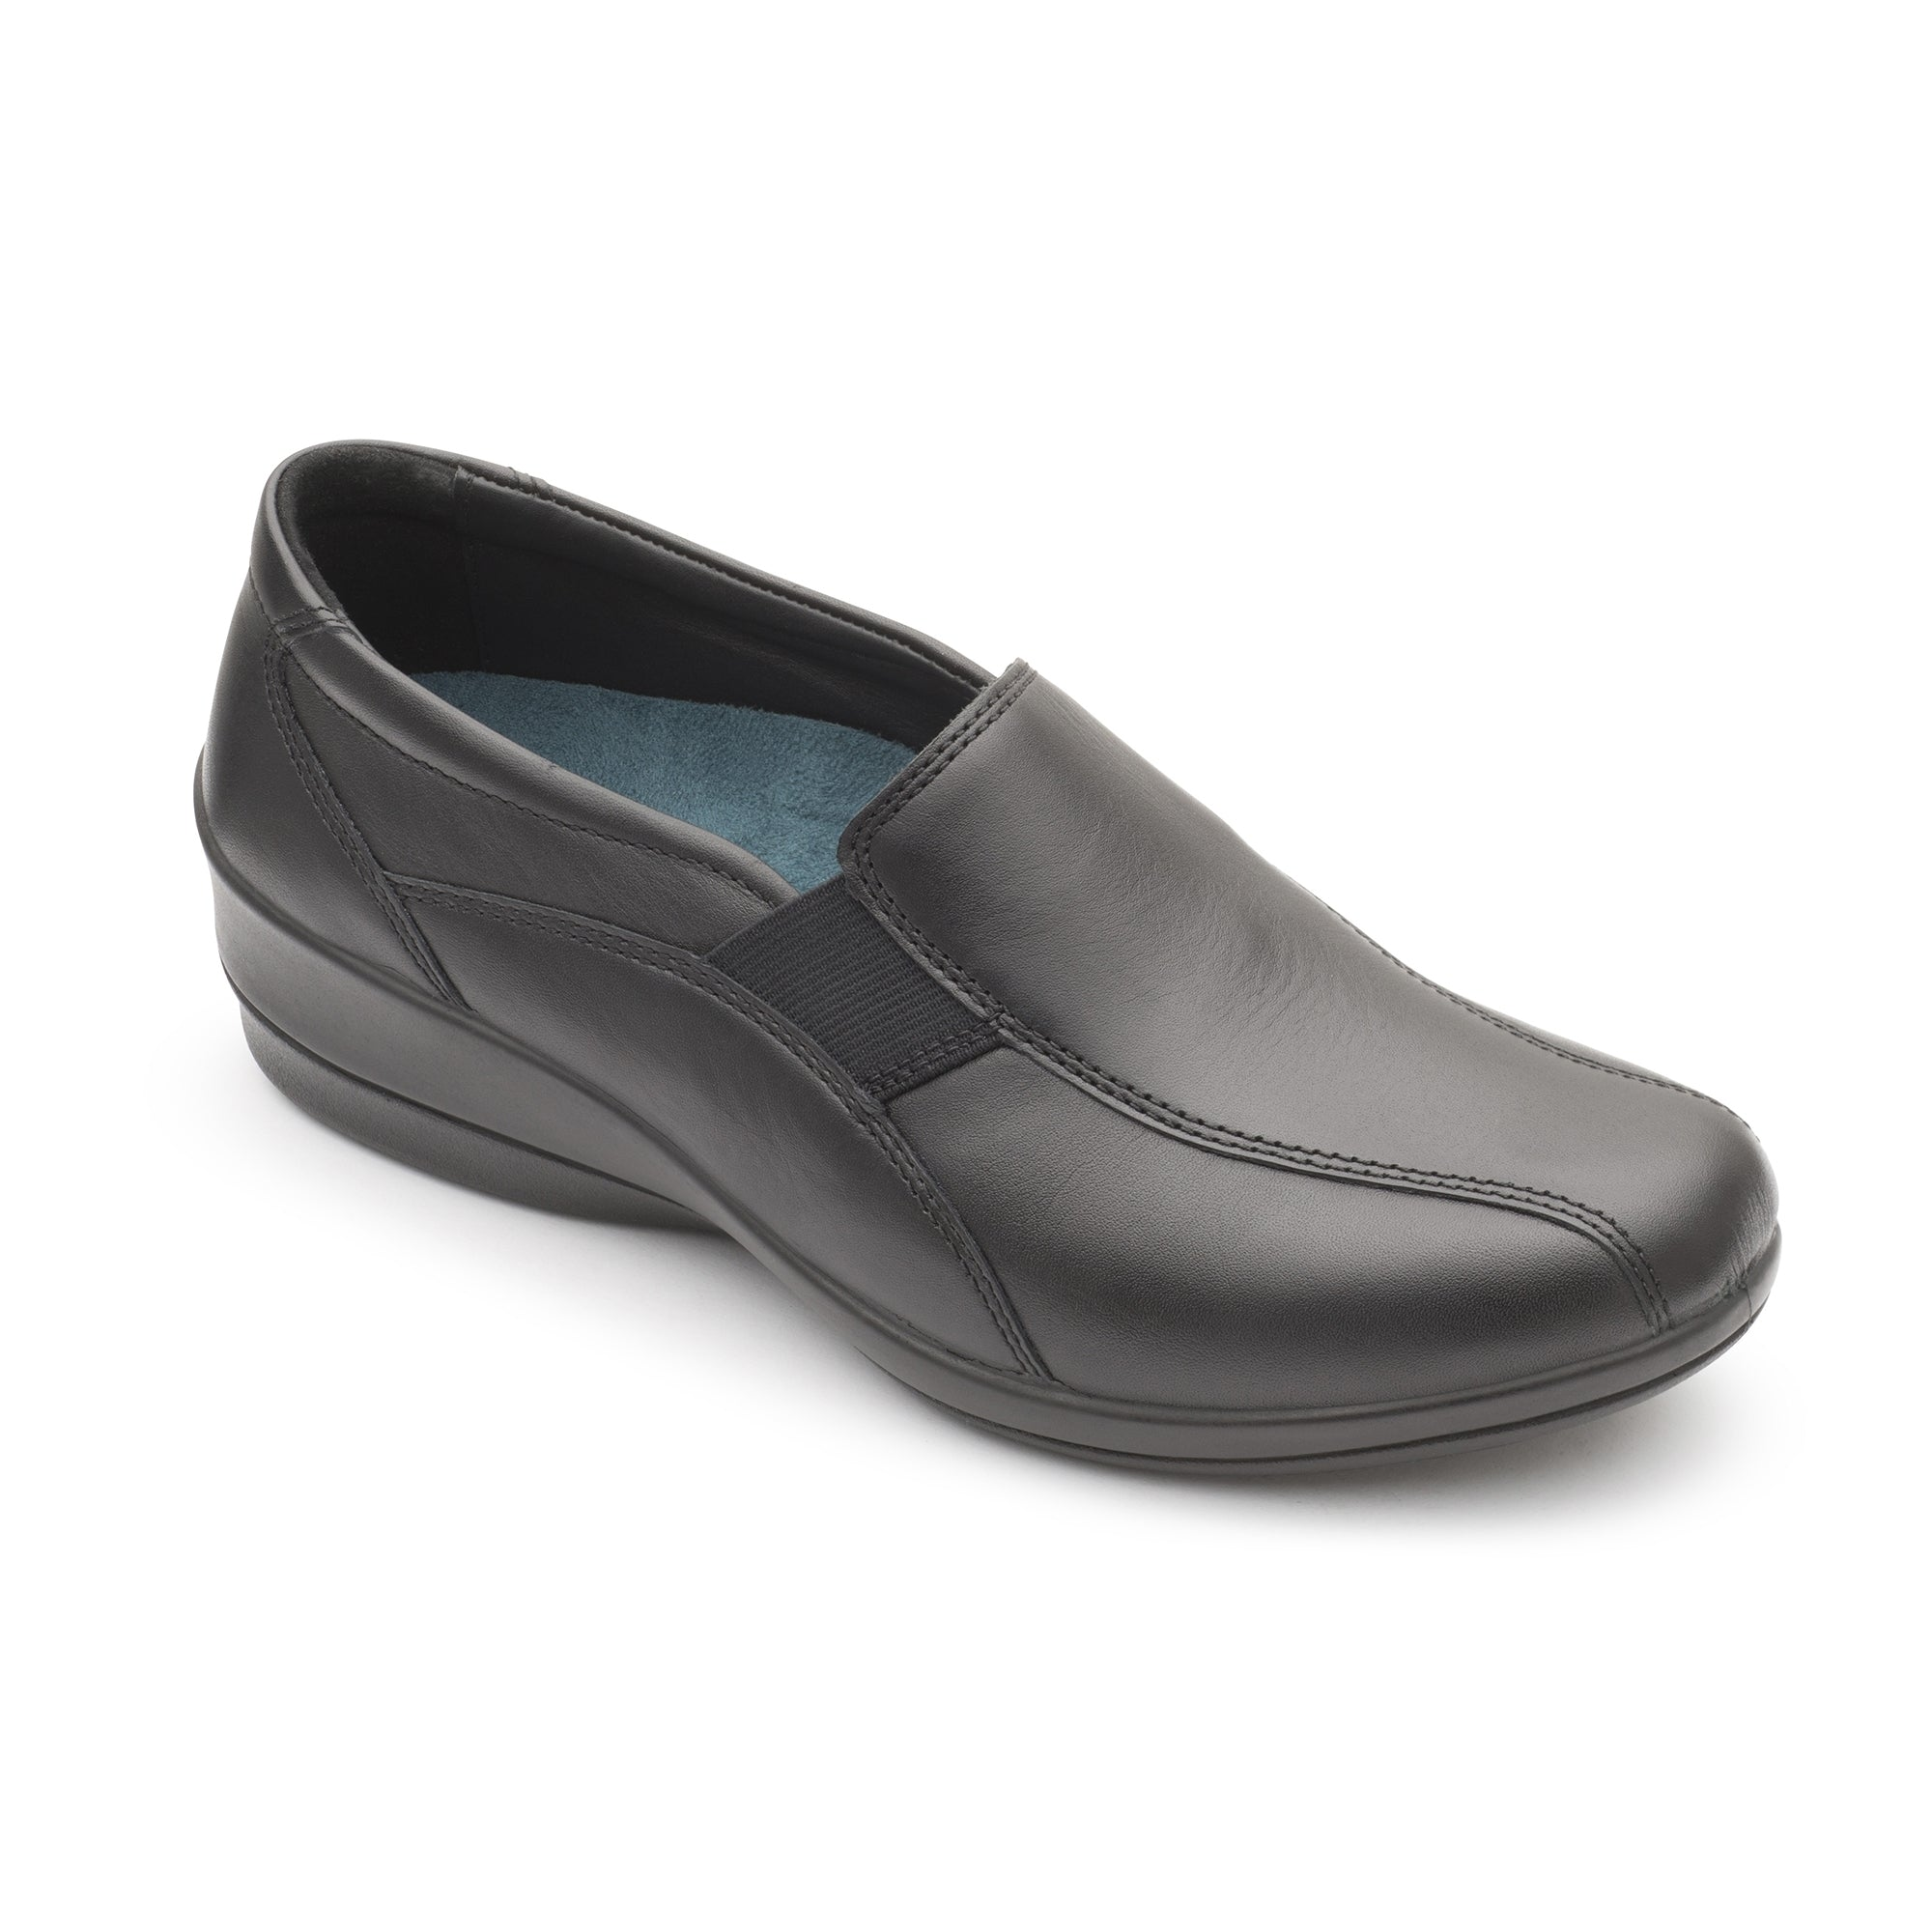 SALE - Padders Skye  Slip-On Dual Fit Comfort Shoe